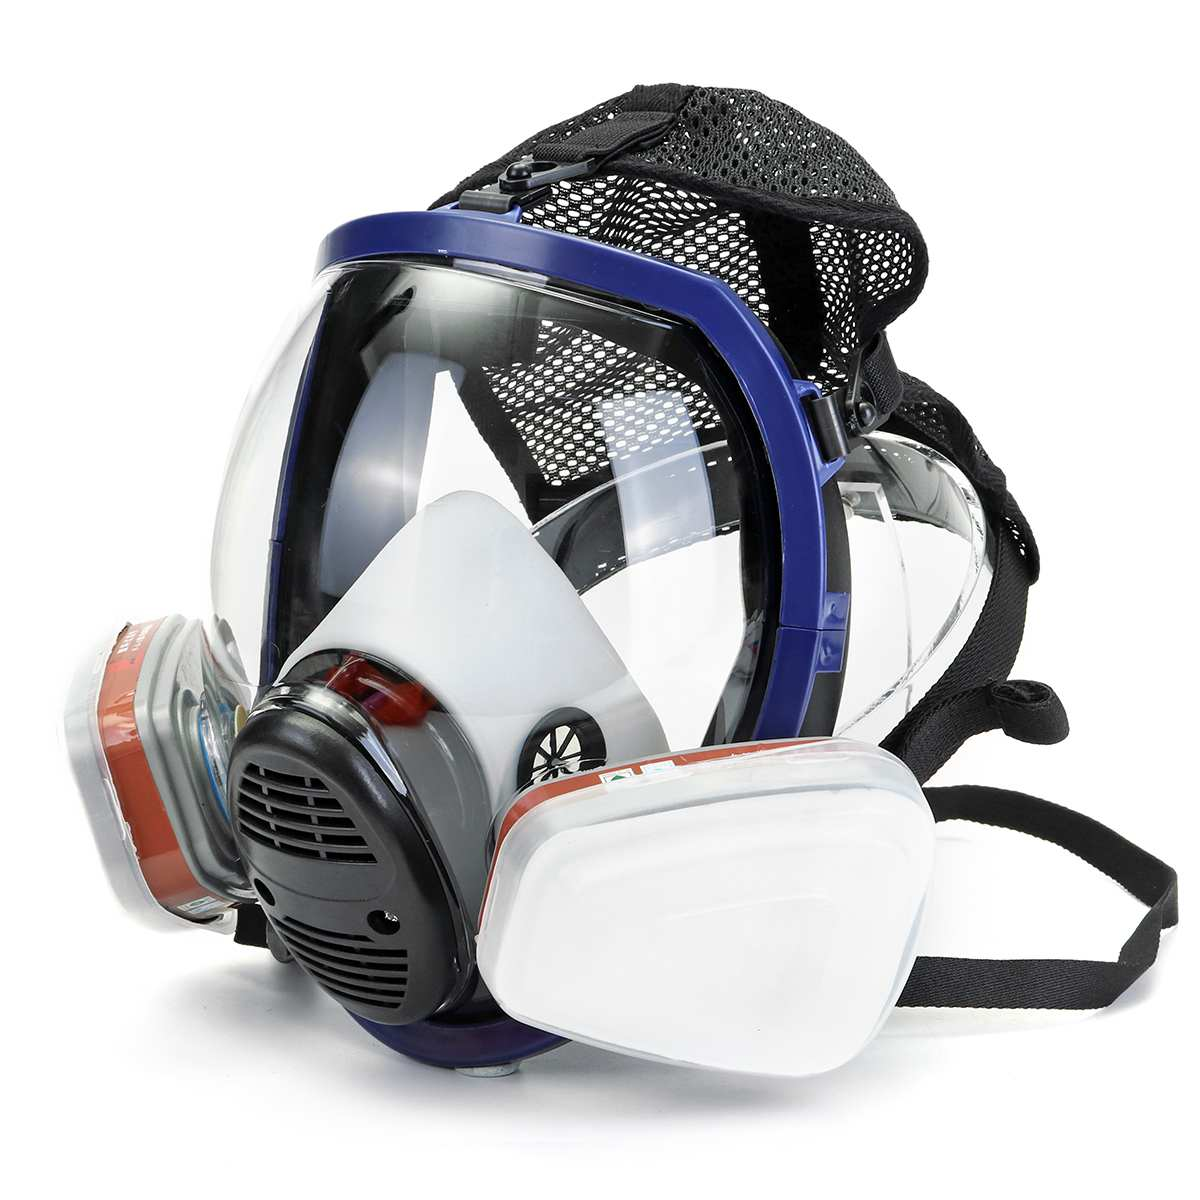 15 In 1 Gas Mask for 6800 Full Face Facepiece Dust Mask Respirator Painting Spraying Chemical